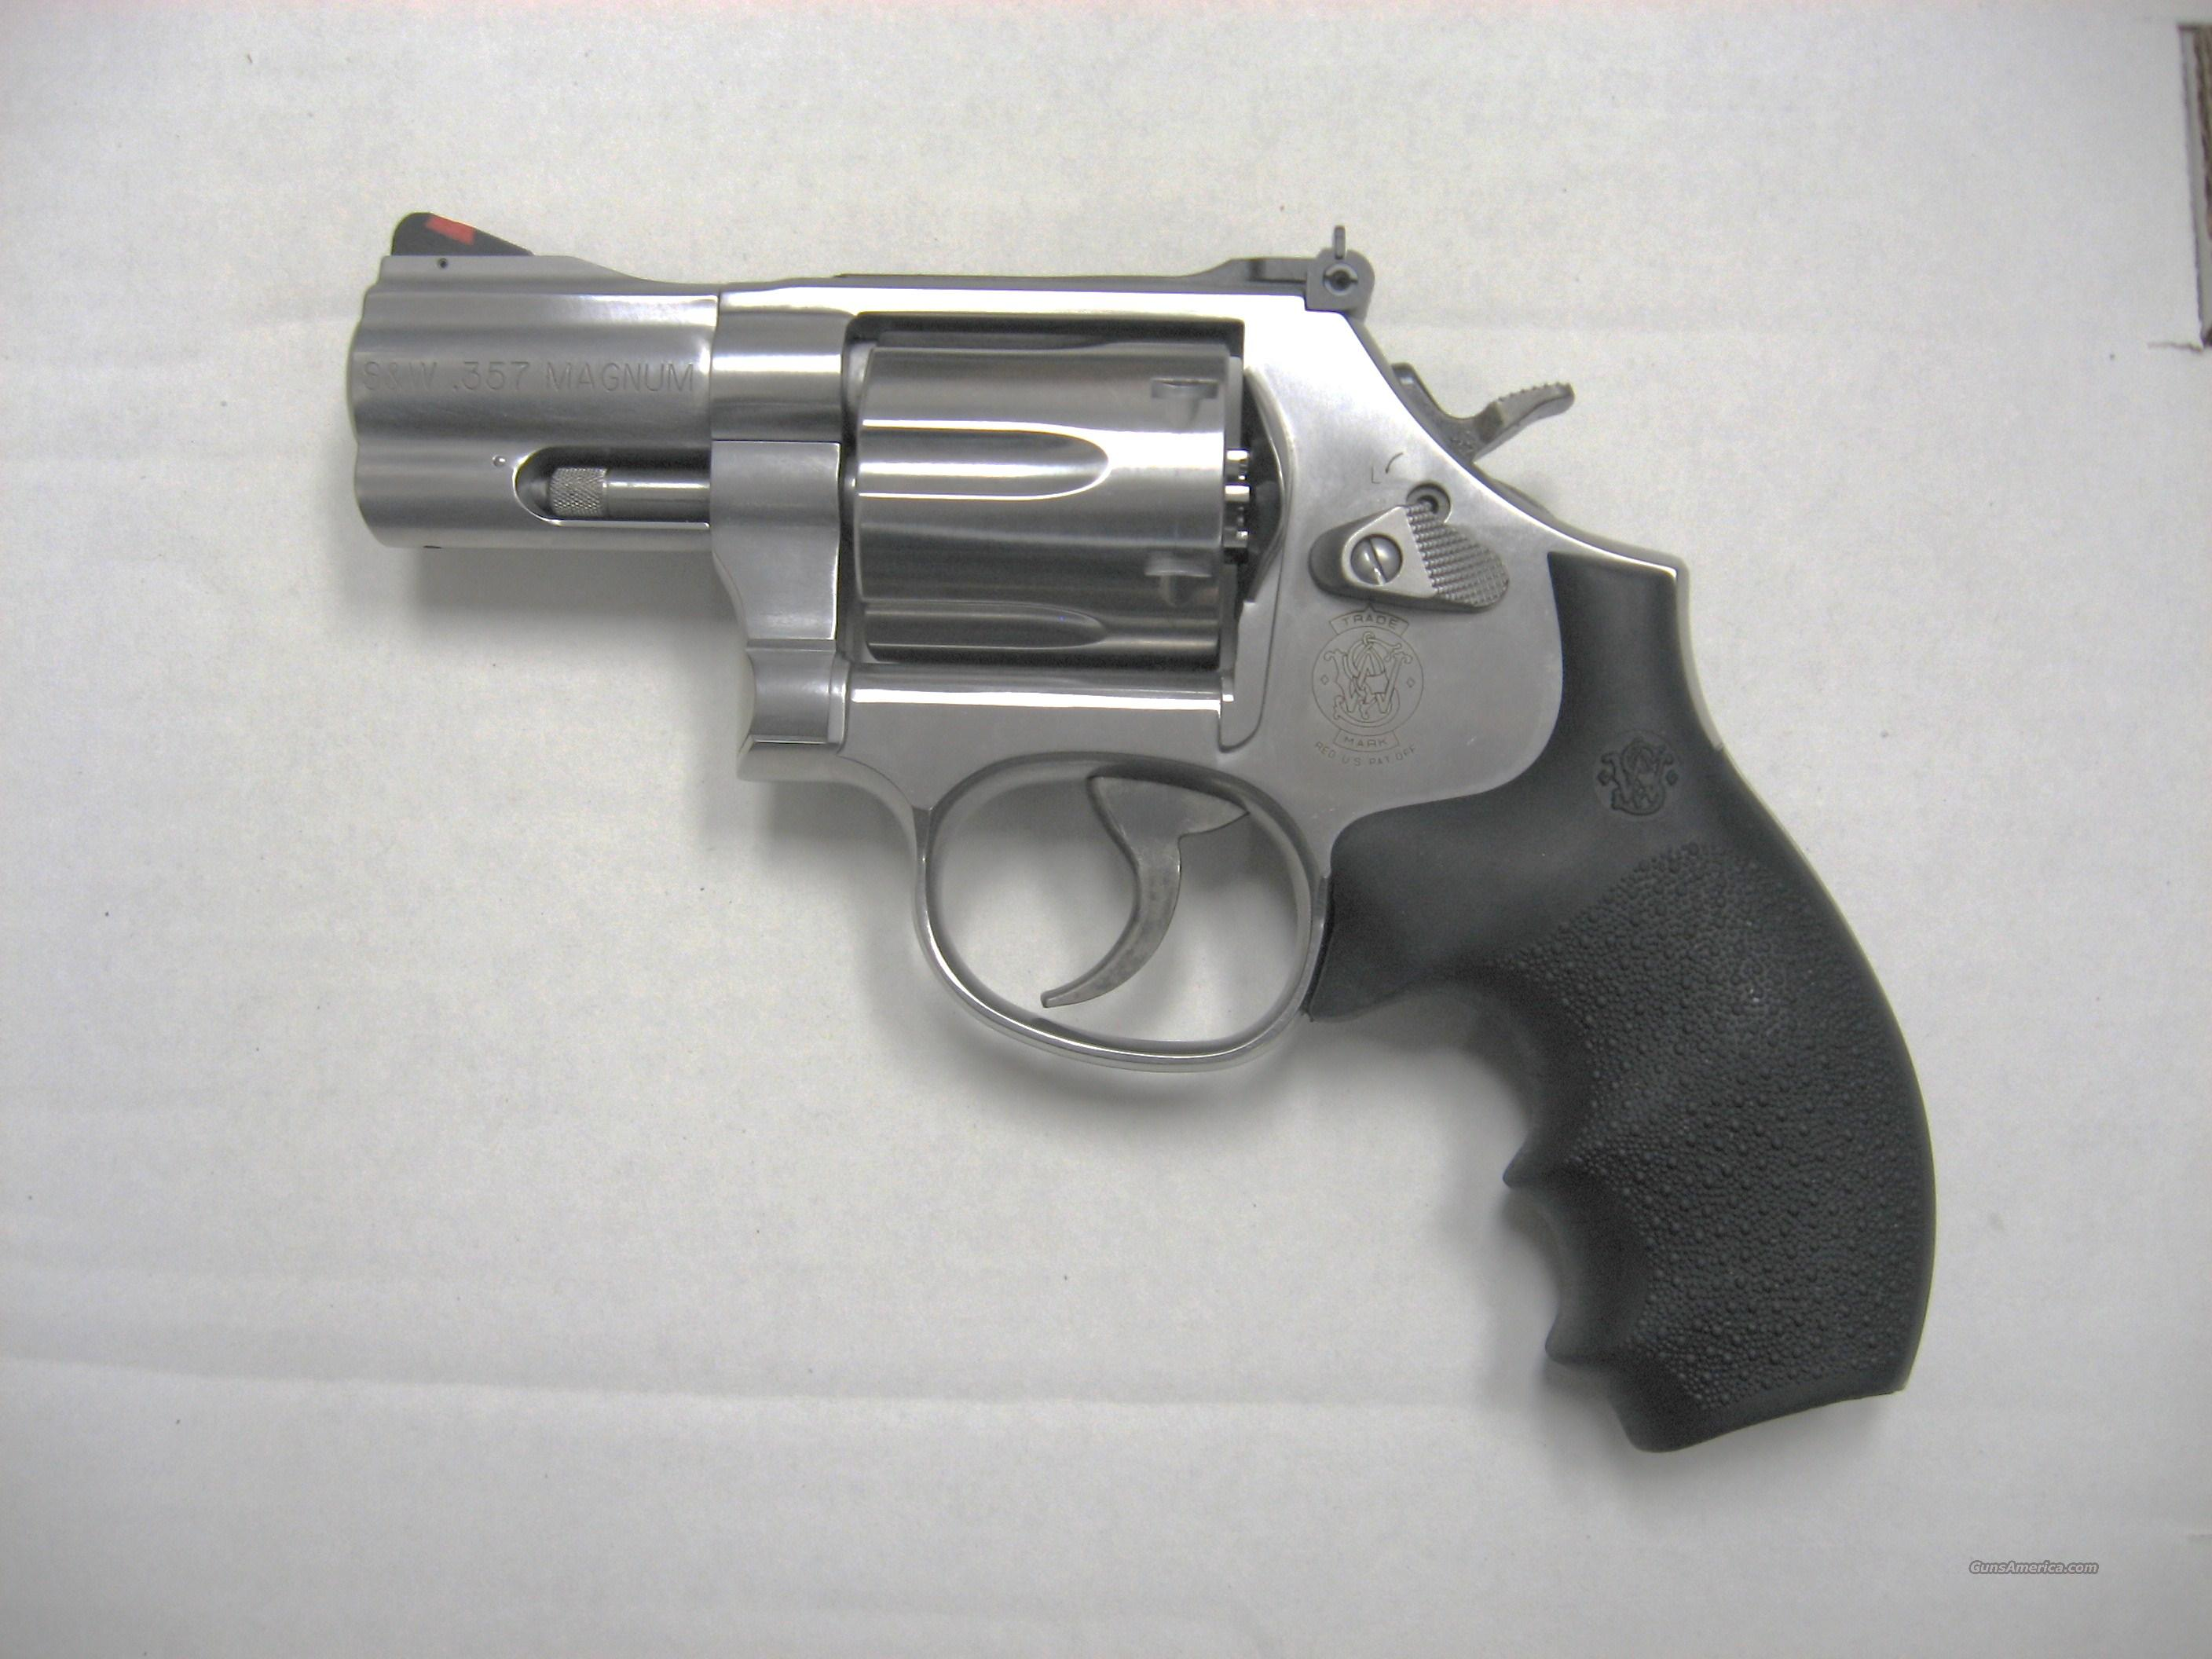 Smith and Wesson 686-6  Guns > Pistols > Smith & Wesson Revolvers > Full Frame Revolver